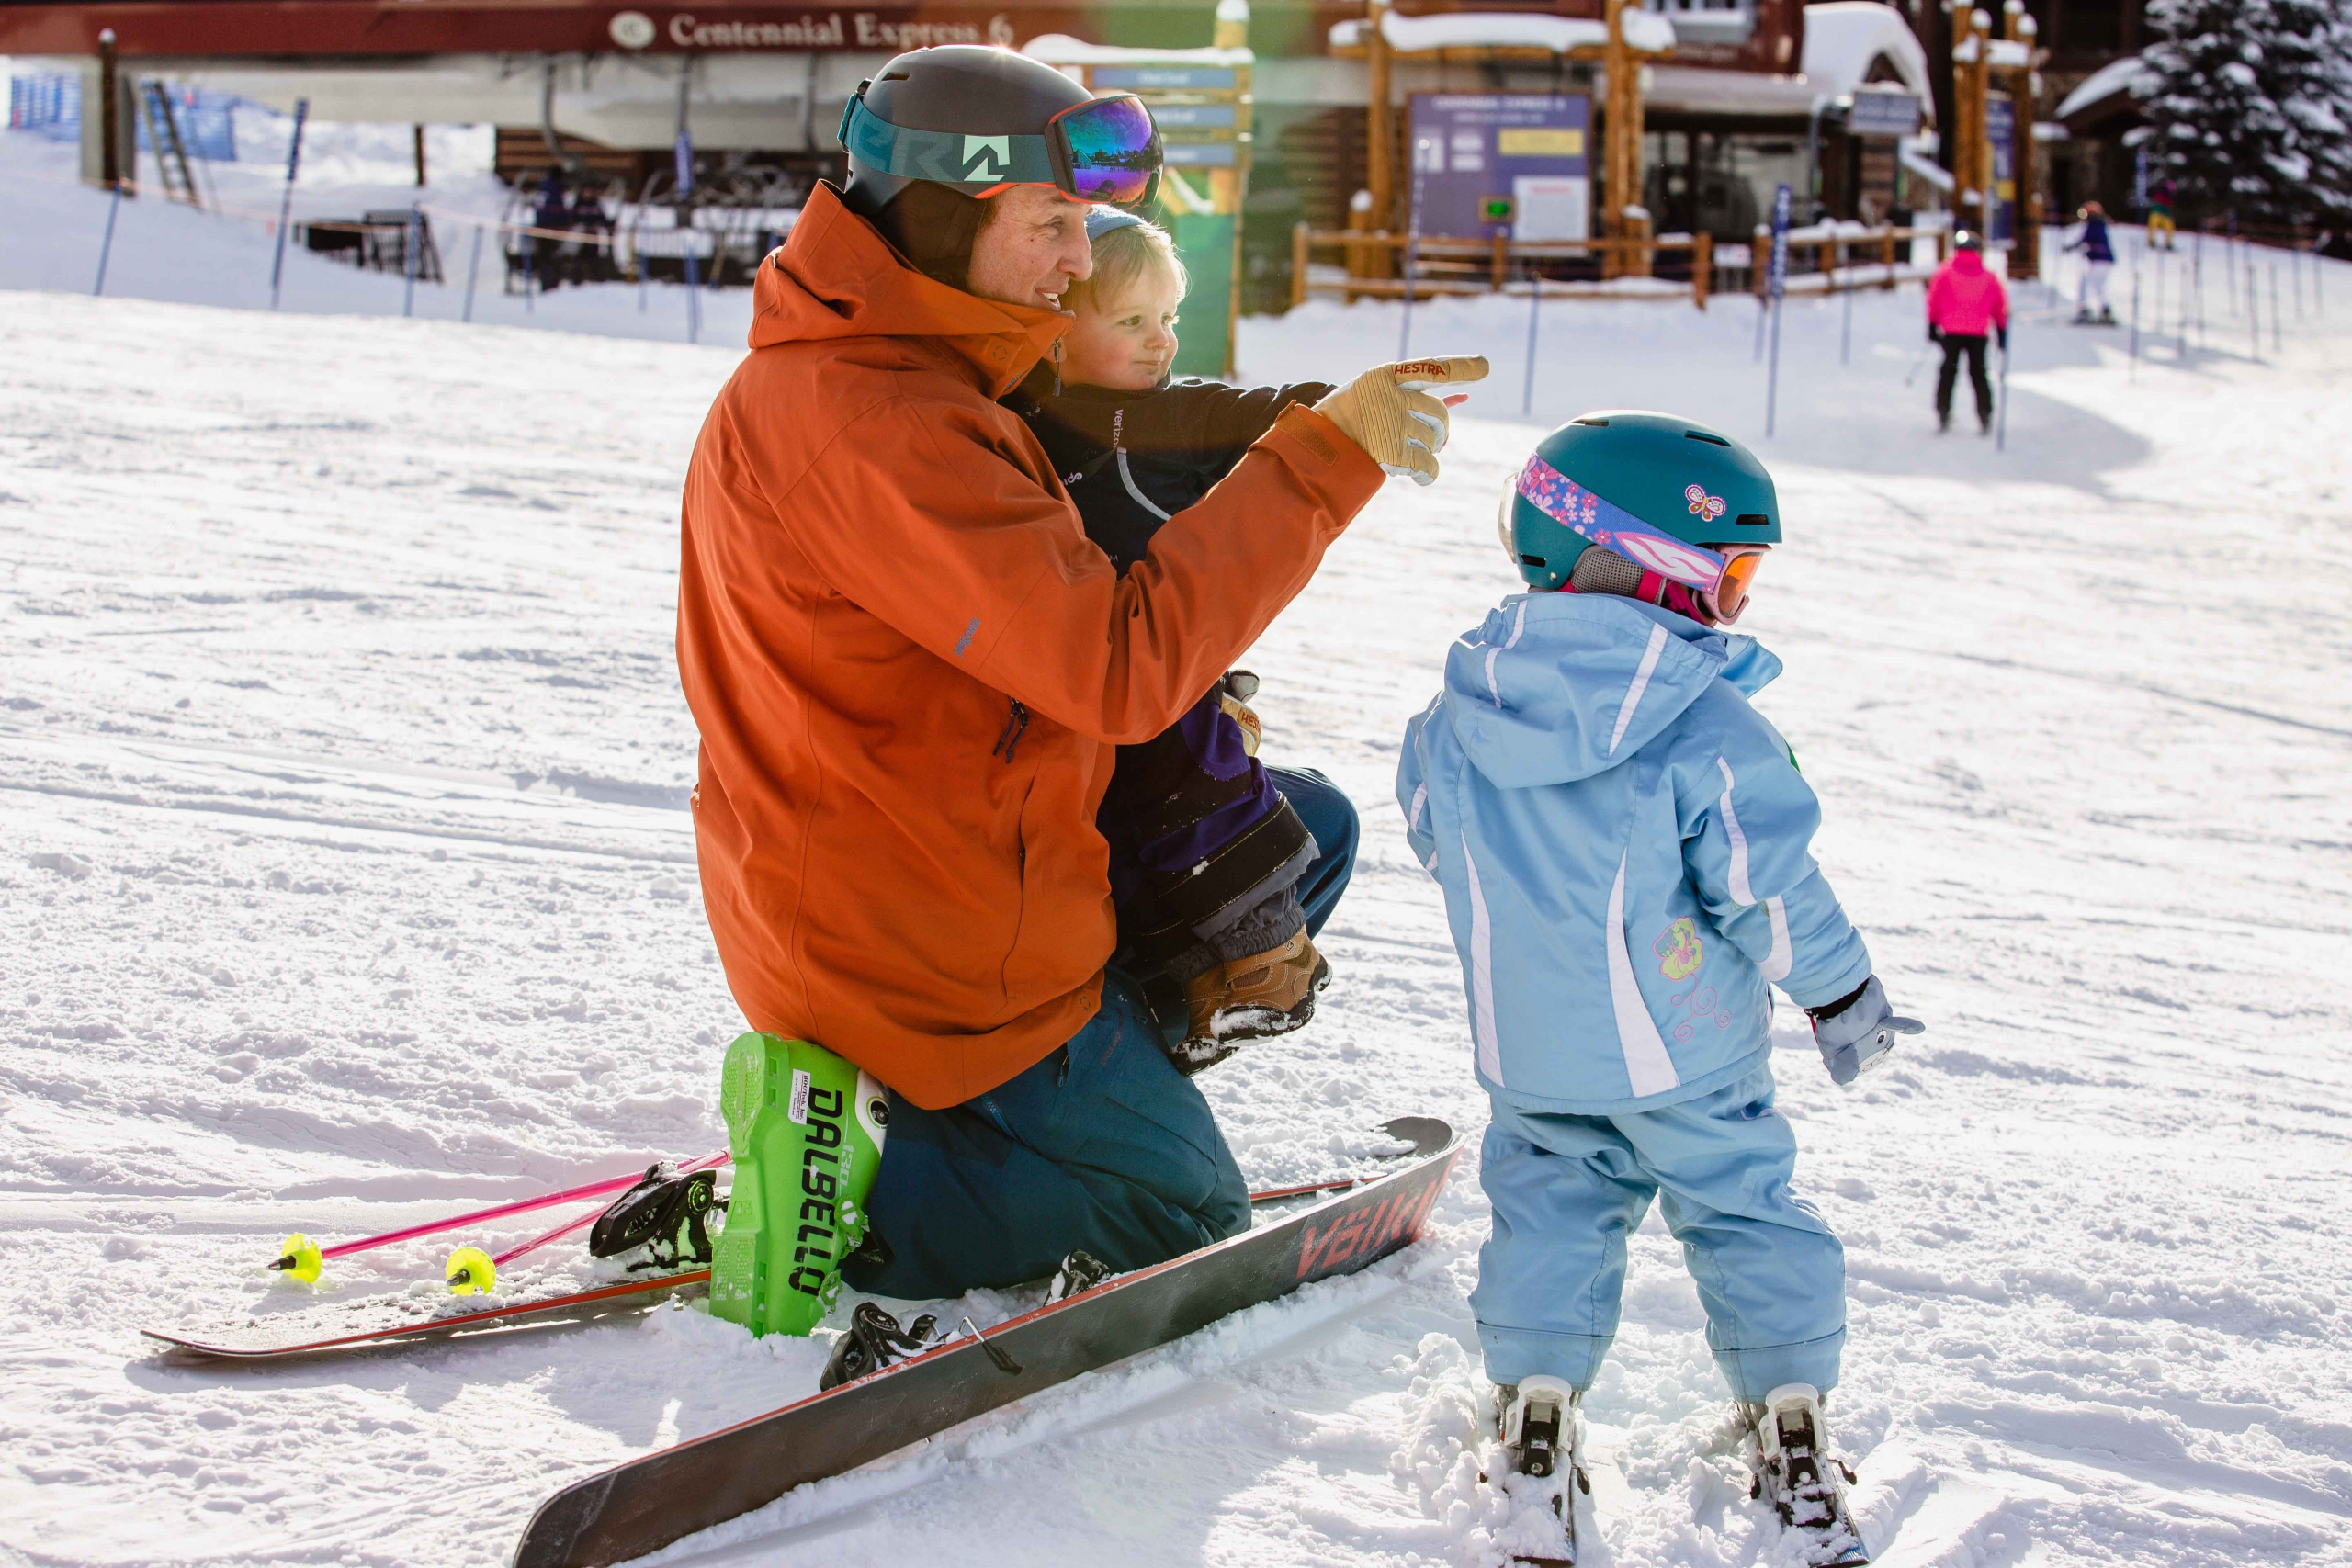 PSIA Alpine Team member Dusty Dyar works with two young skiers